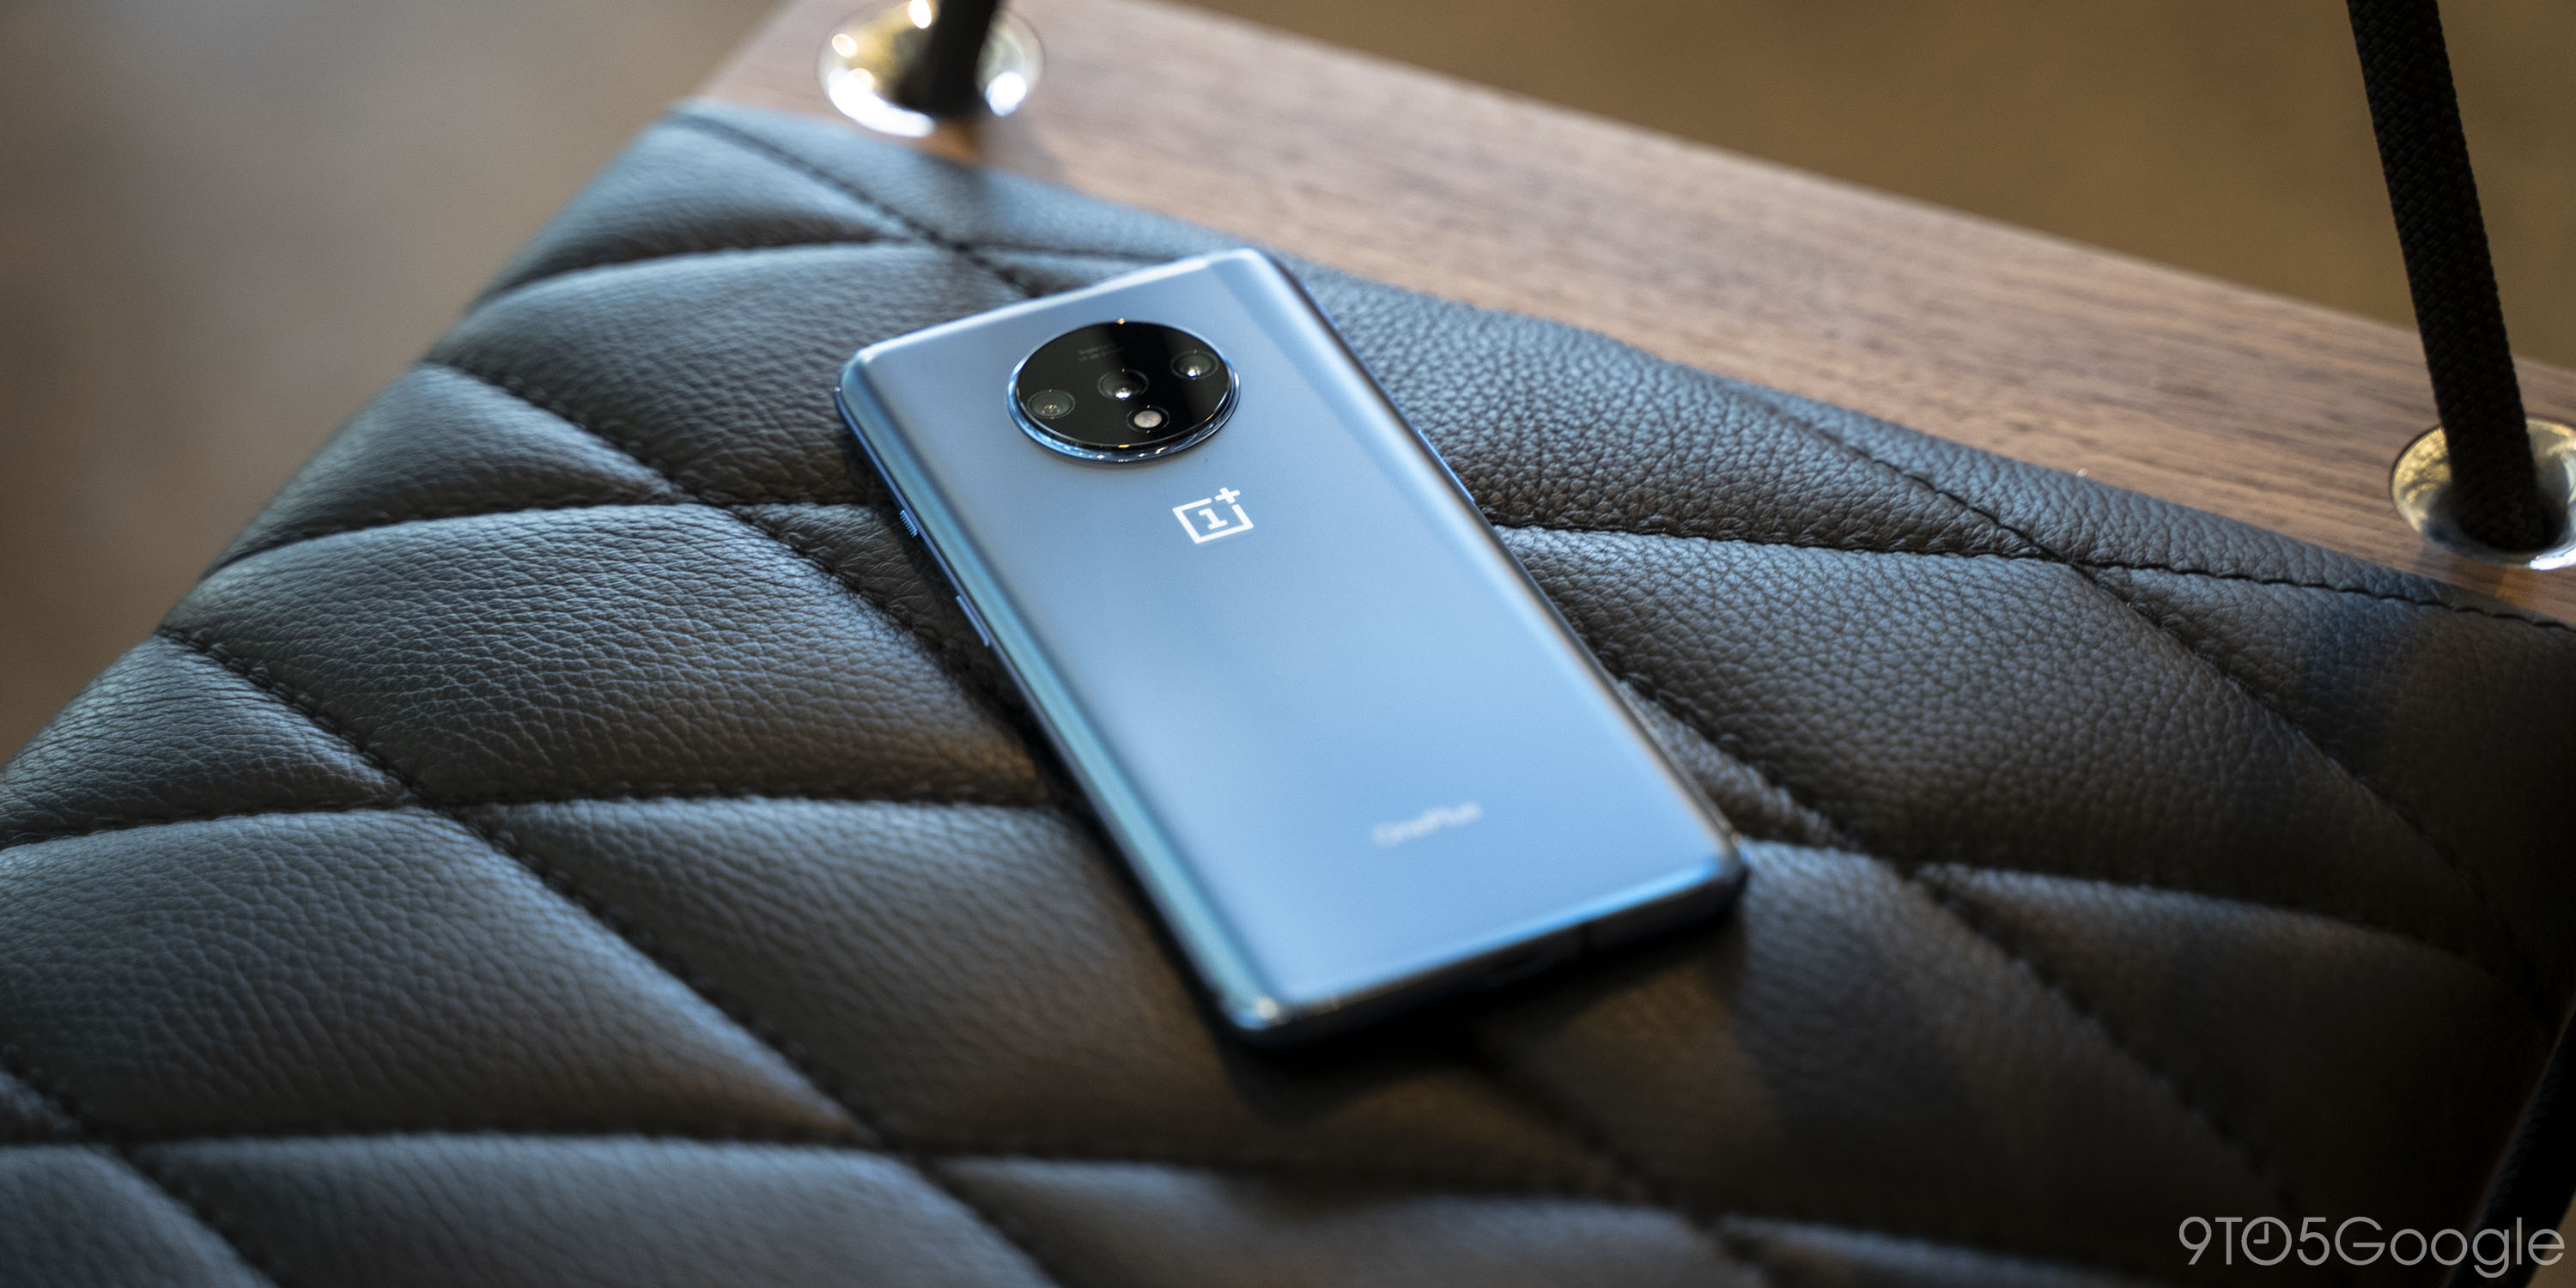 OnePlus 7T: Where ot buy it and get the best deal 9to5Google